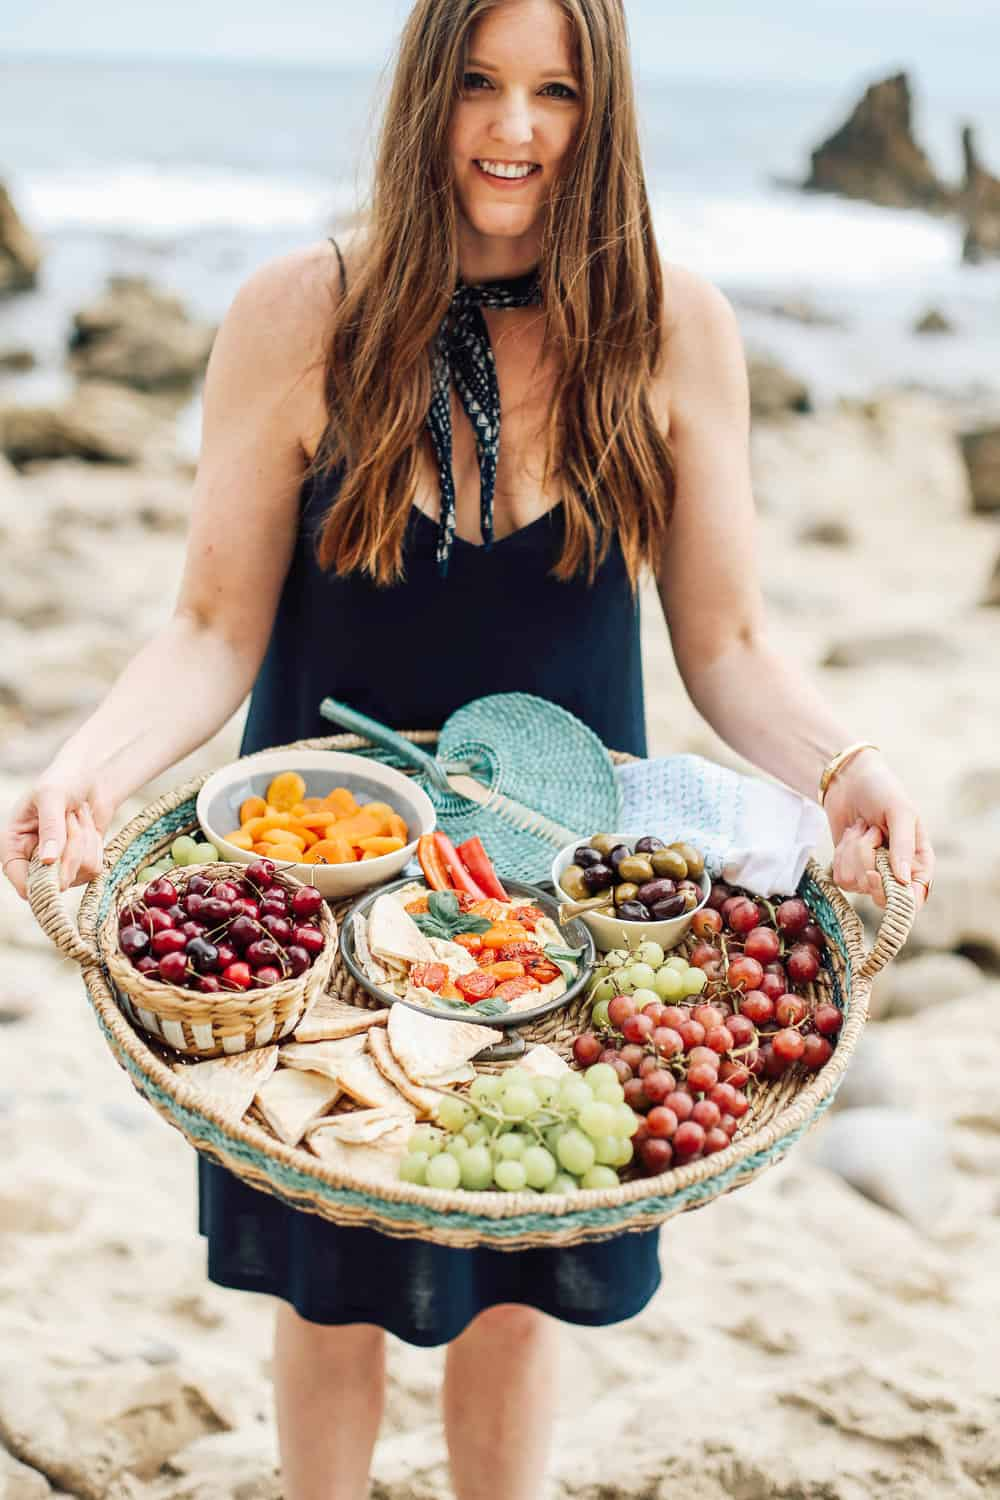 Elizabeth holding a wicker basket full of grapes pita cherries apricots olives and hummus on the beach